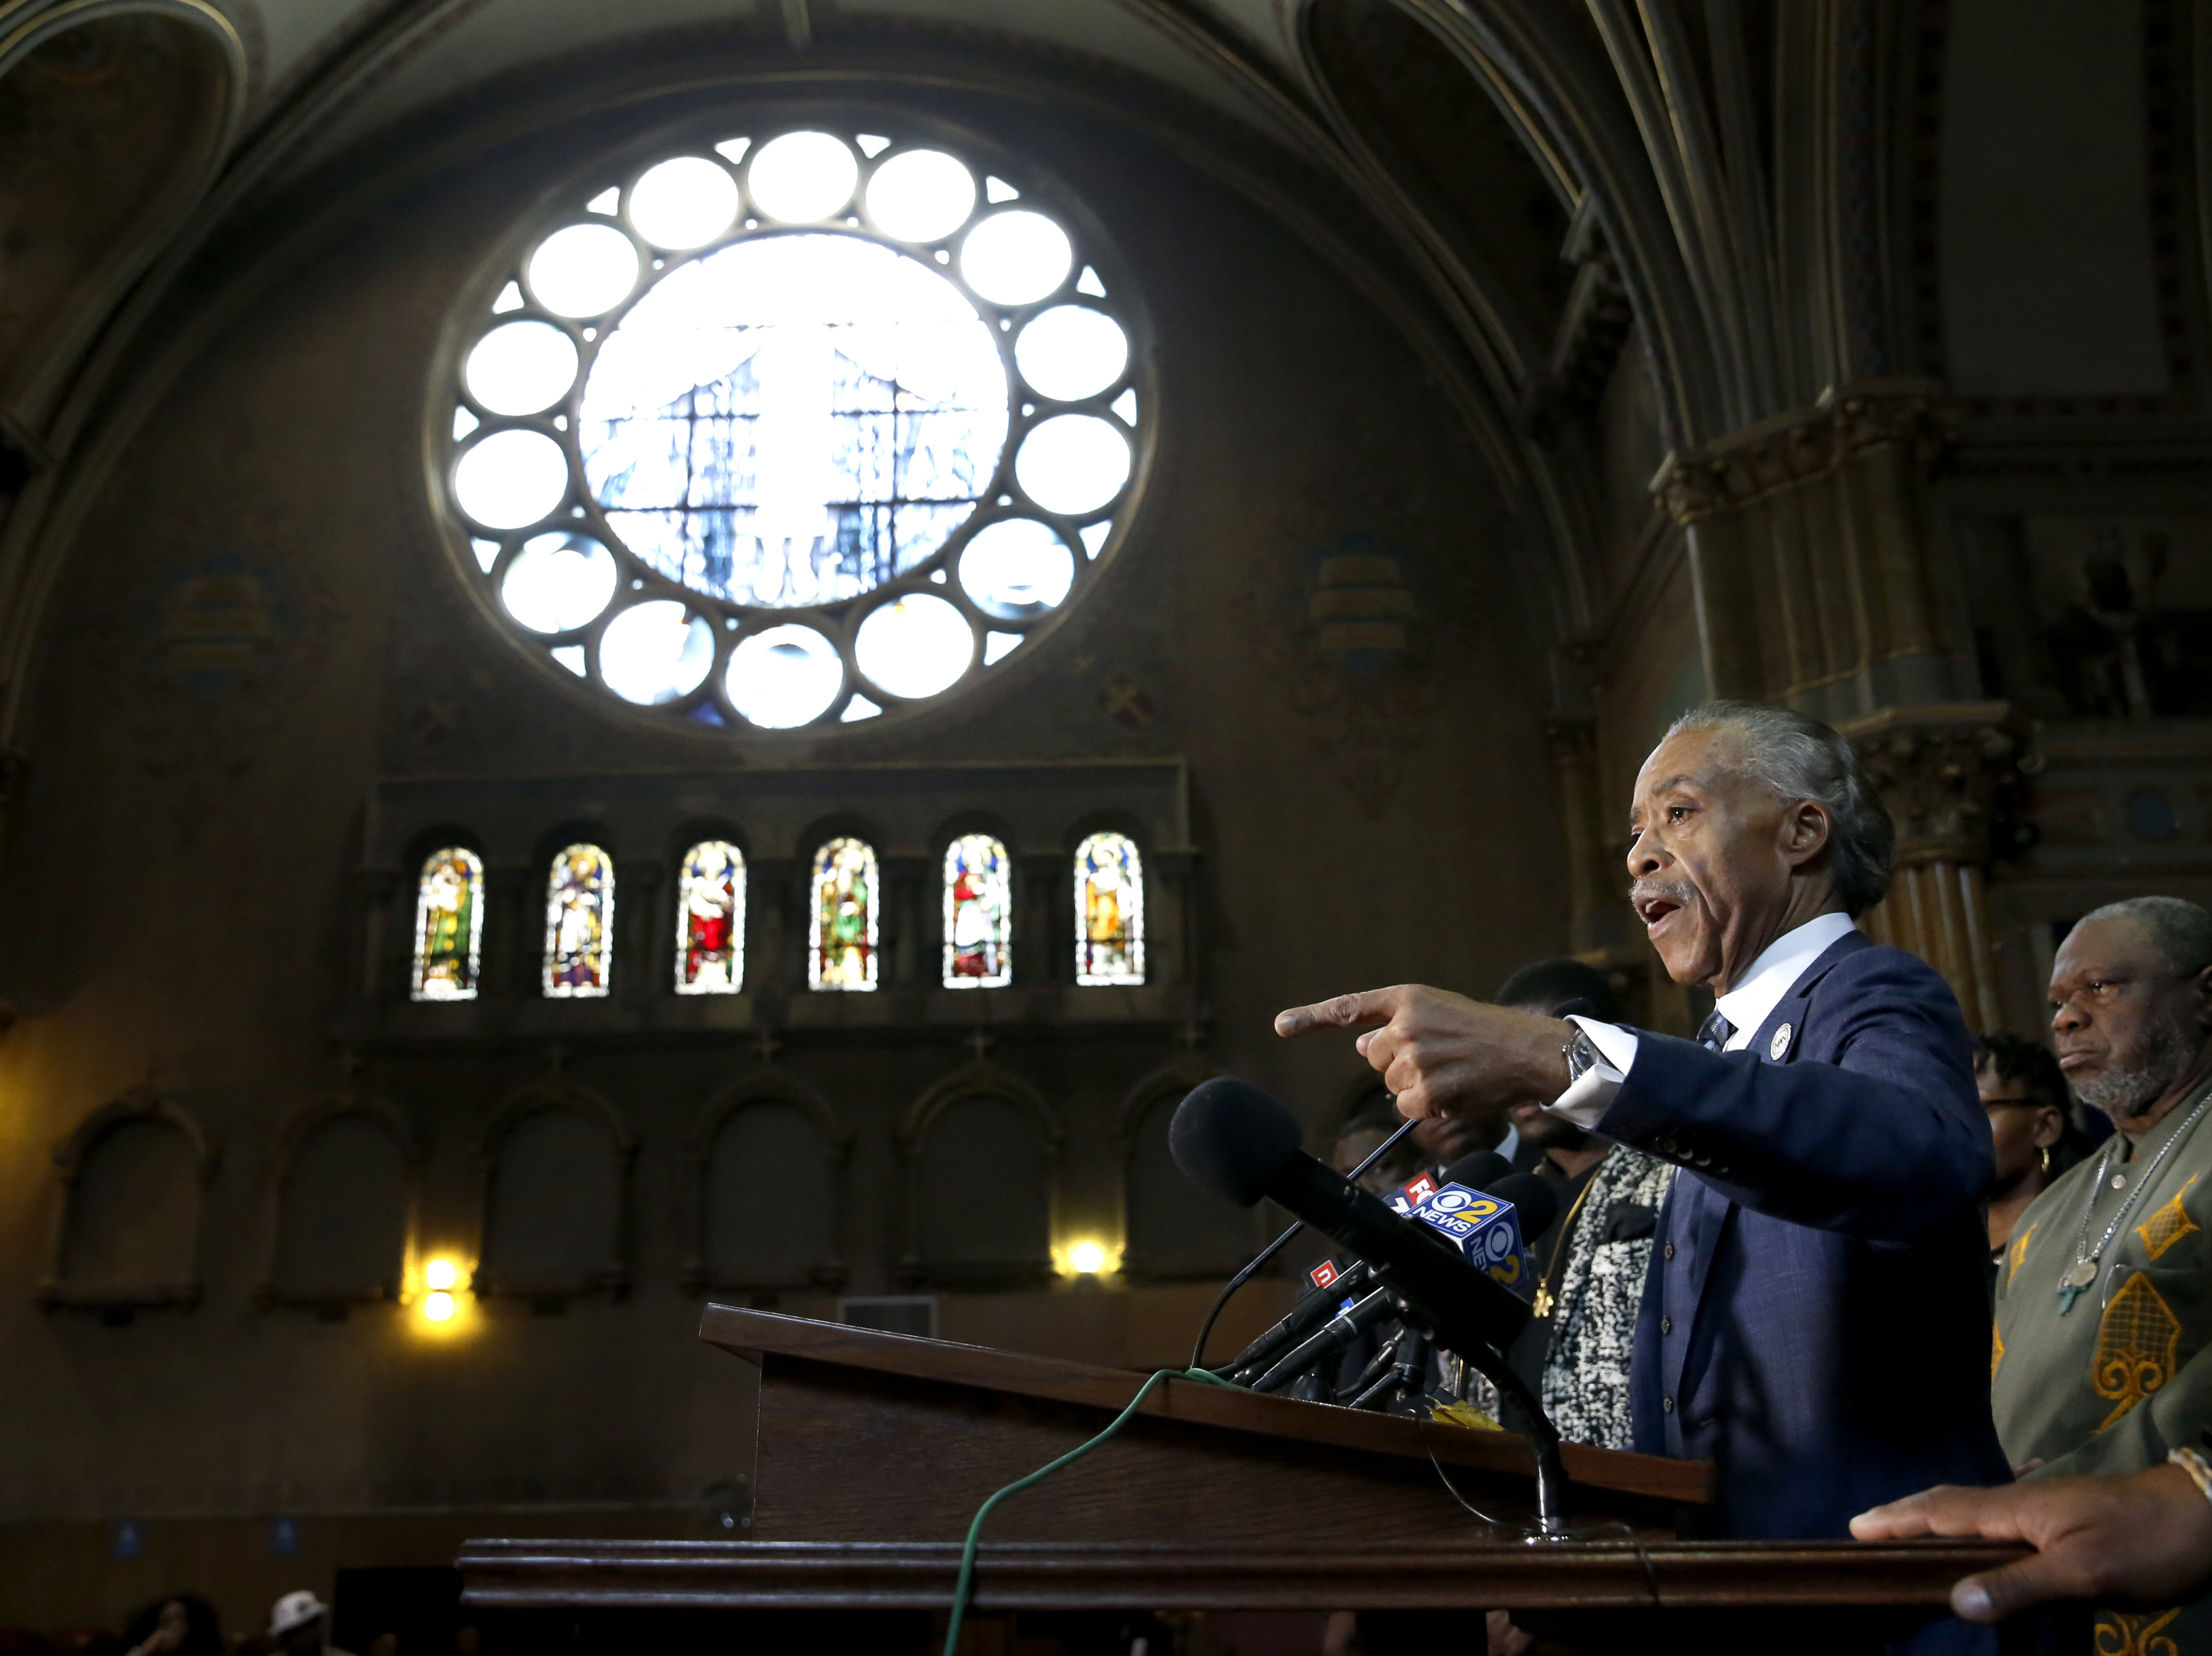 Rev. Al Sharpton stands with clergy and responds to a question during a news conference, July 13, 2017, in Chicago, where concerns were voiced over the announcement that more federal agents will be sent to Chicago without serious meetings with commun...